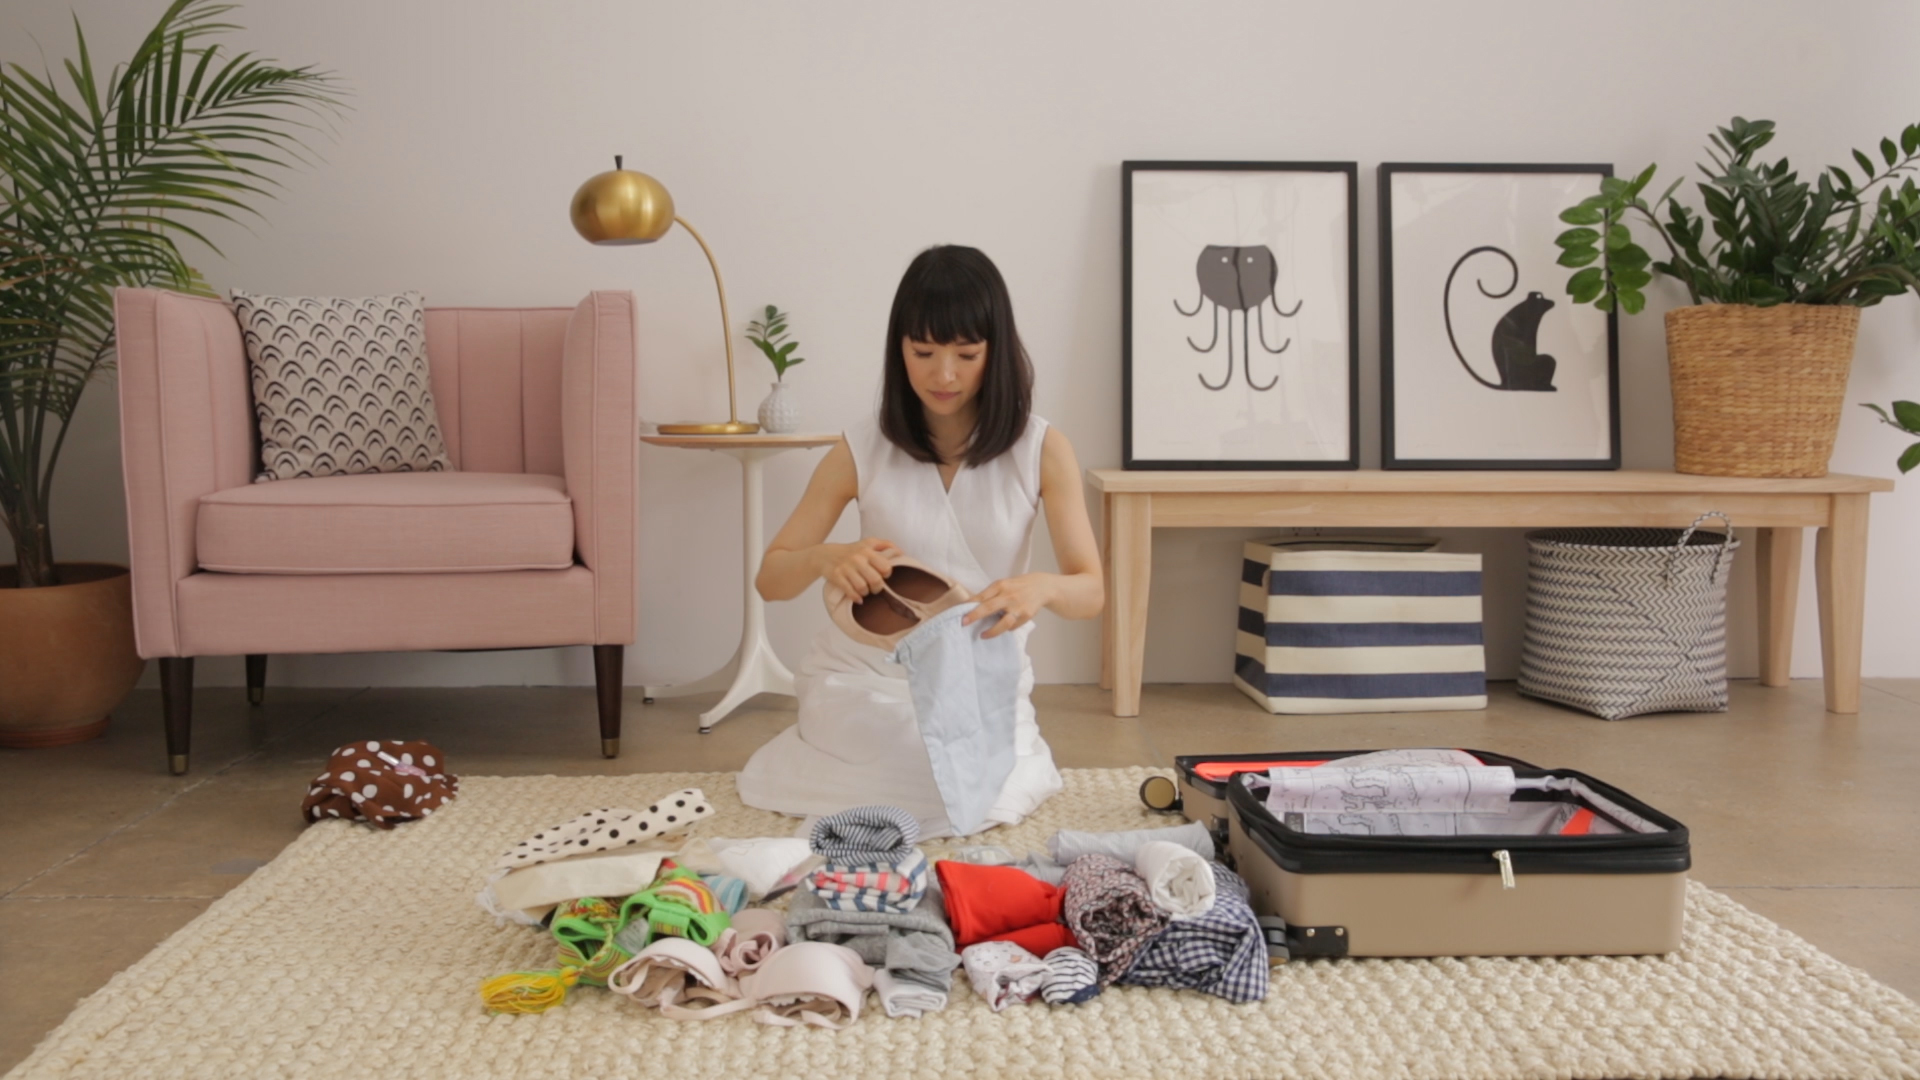 Marie Kondo Showed Us How to Pack a Suitcase